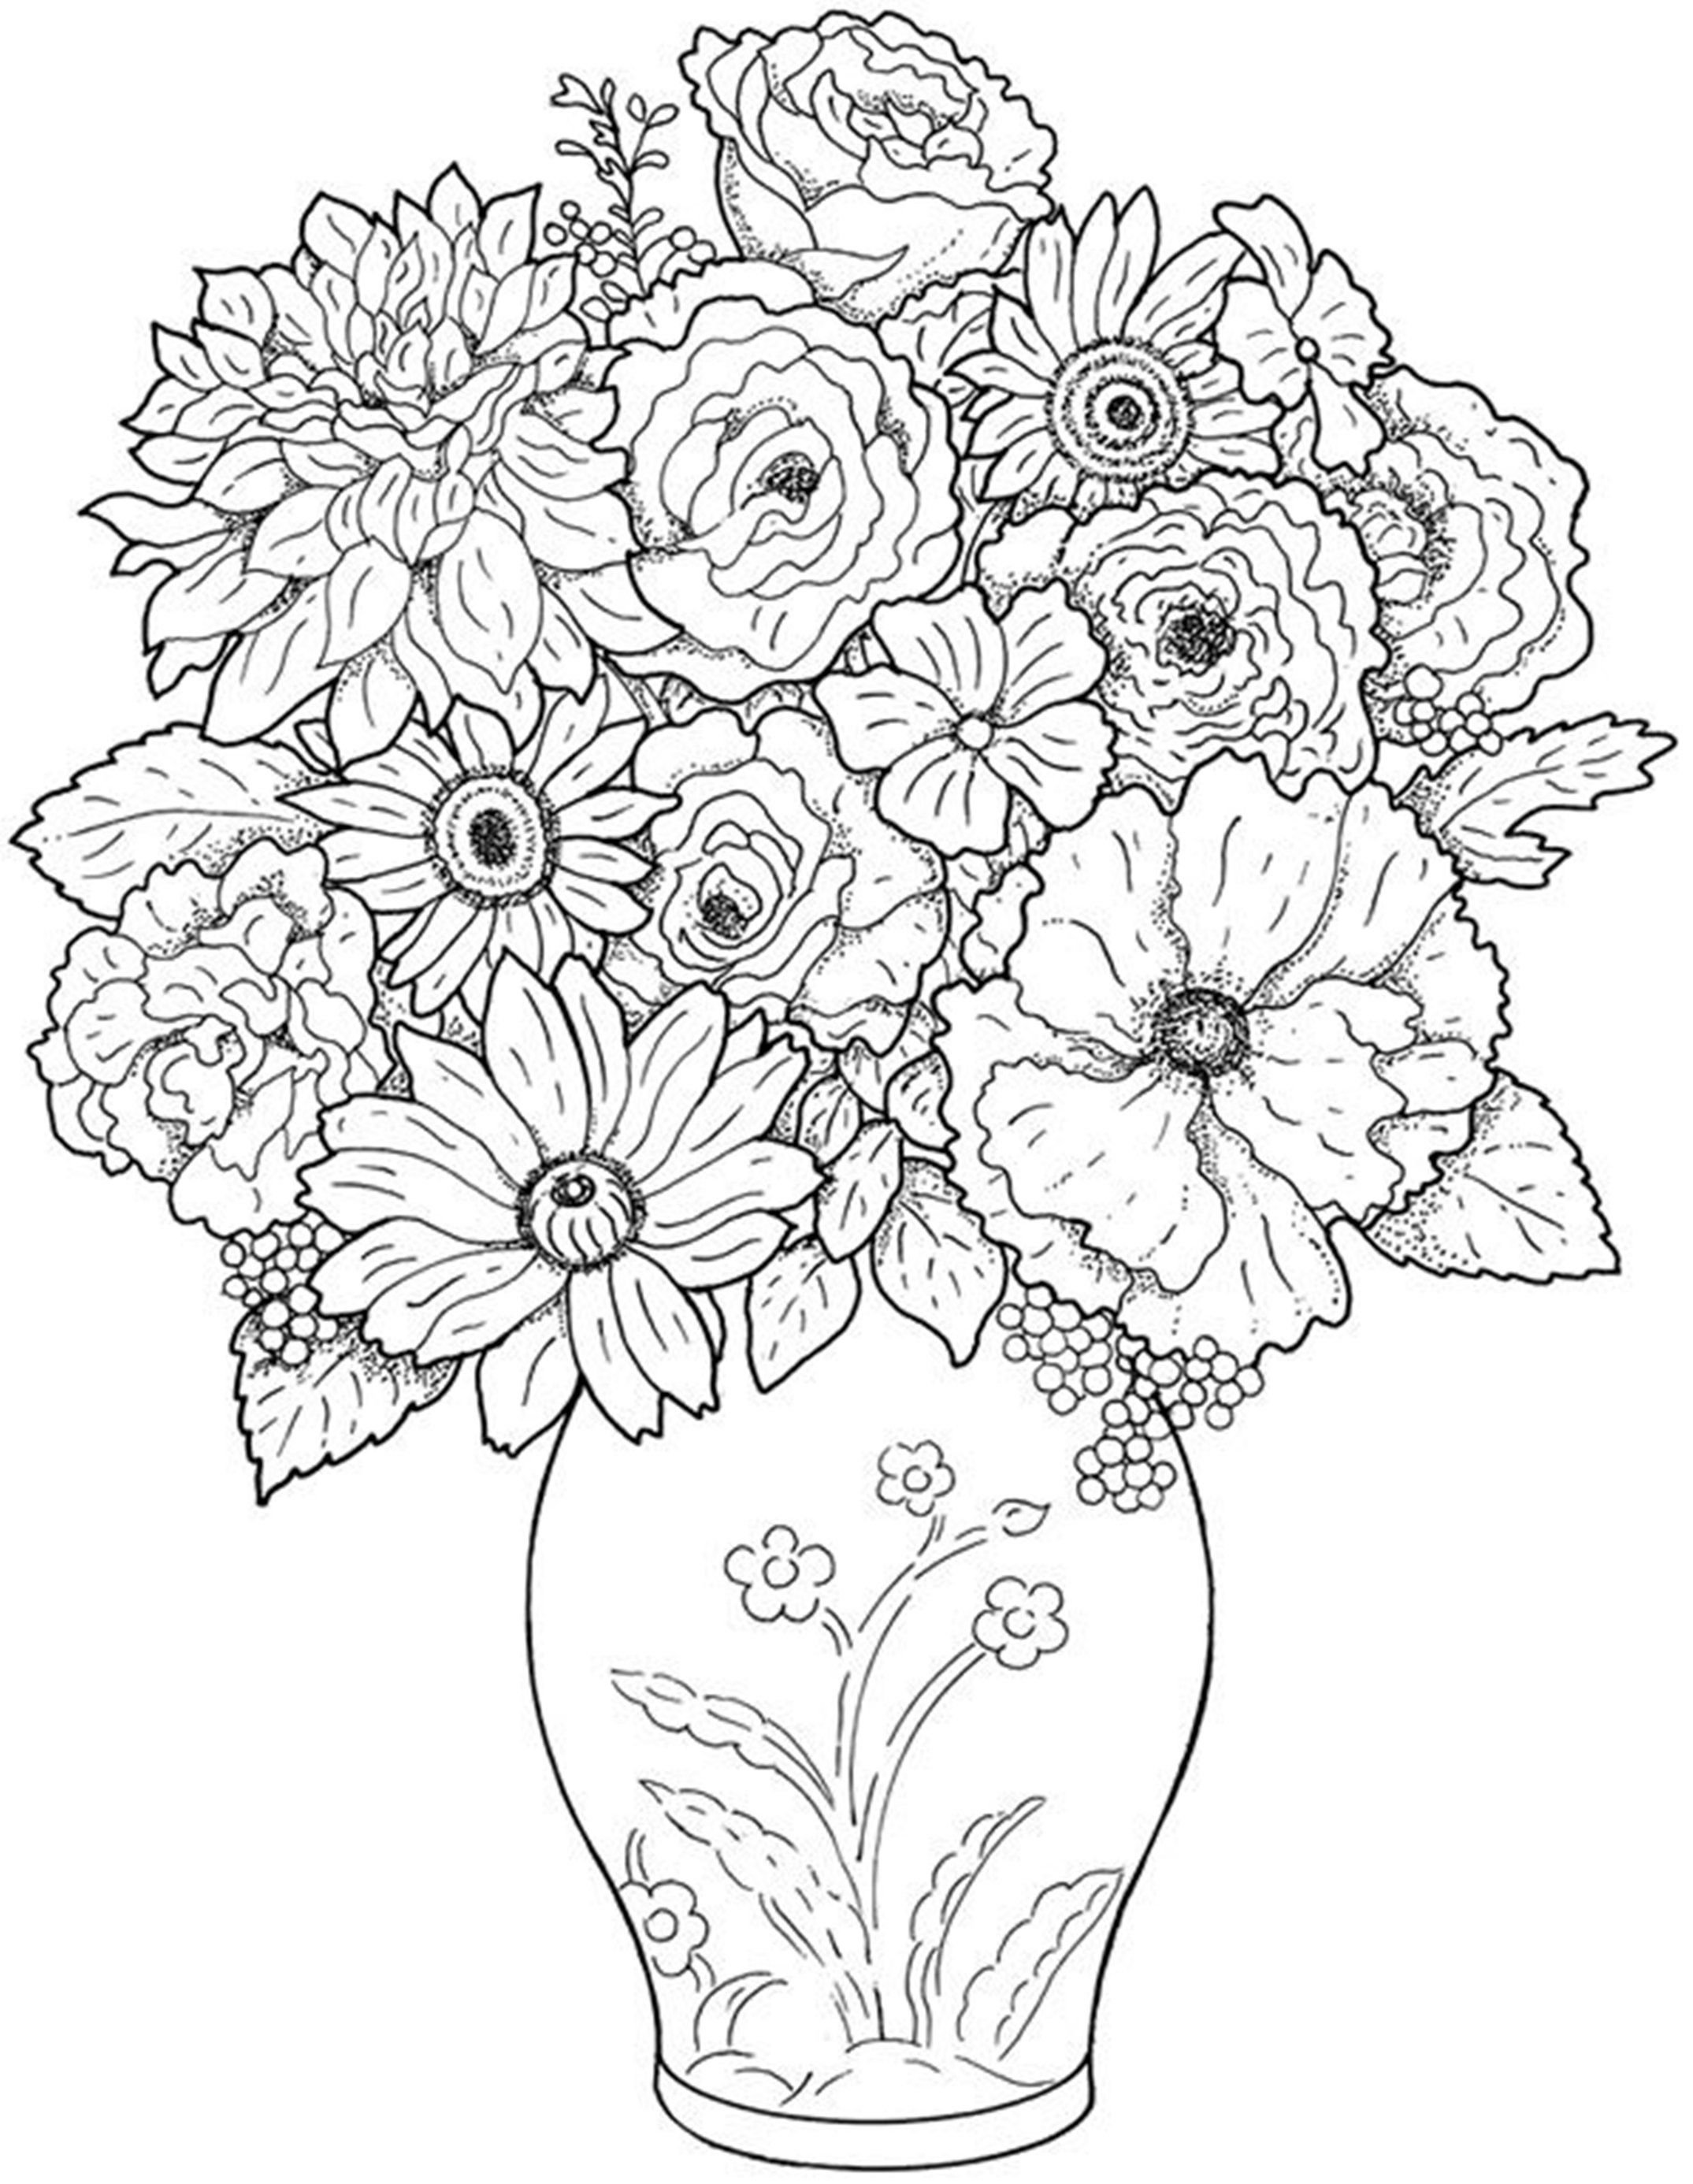 colouring flowers free printable flower coloring pages for kids best flowers colouring